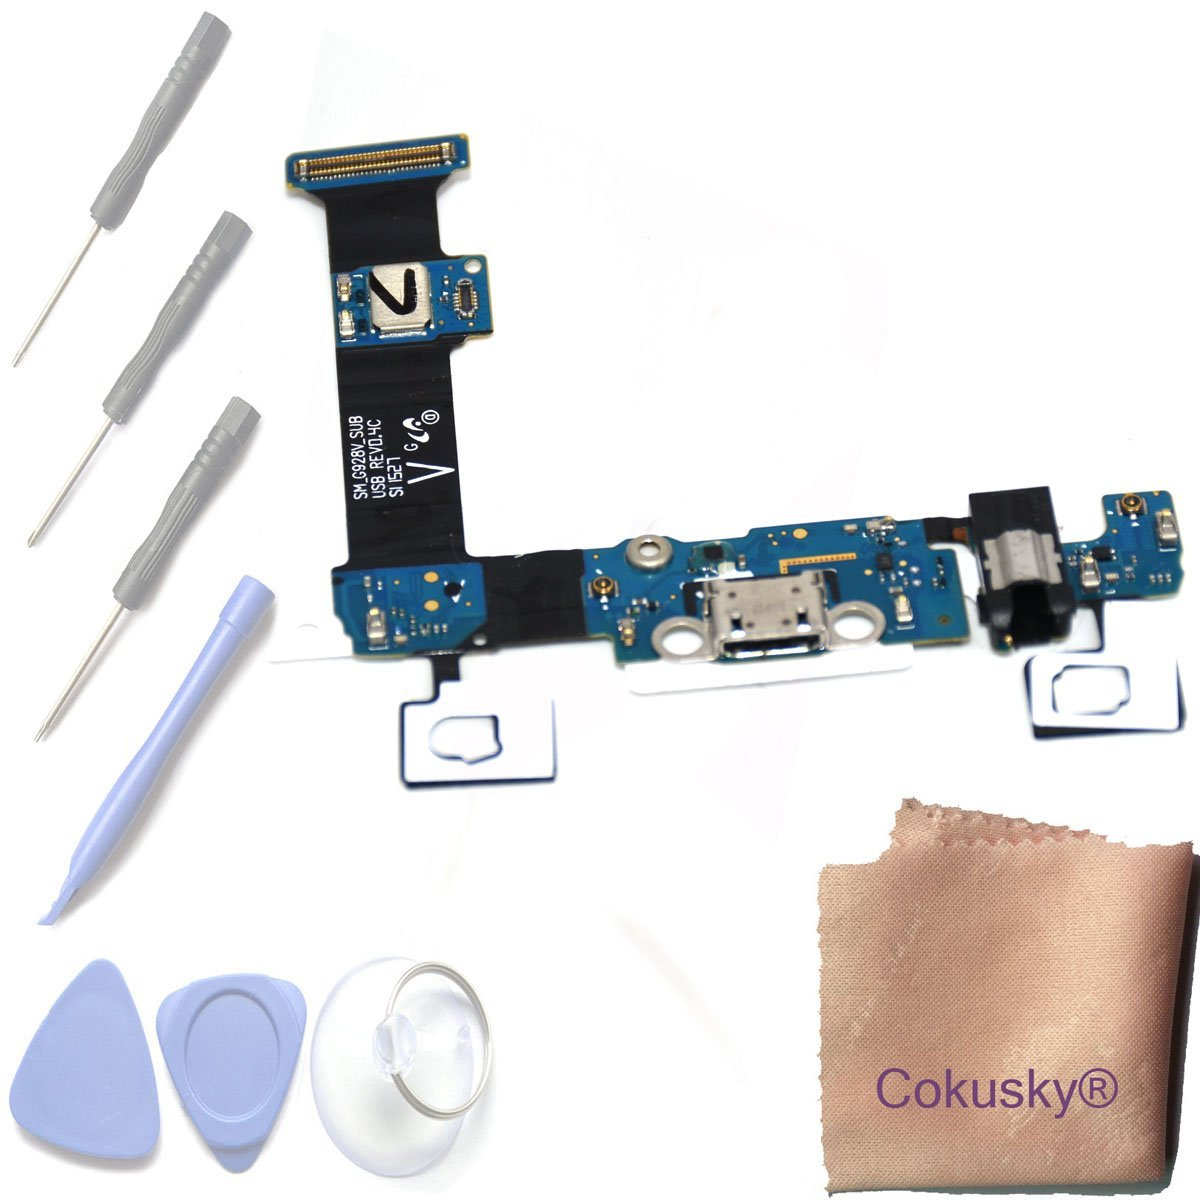 Cokusky USB Charger Charging Port Flex Cable Dock Connector USB with Mic Microphone Repair for Samsung Galaxy S6 Edge Plus (G928V Verizon)